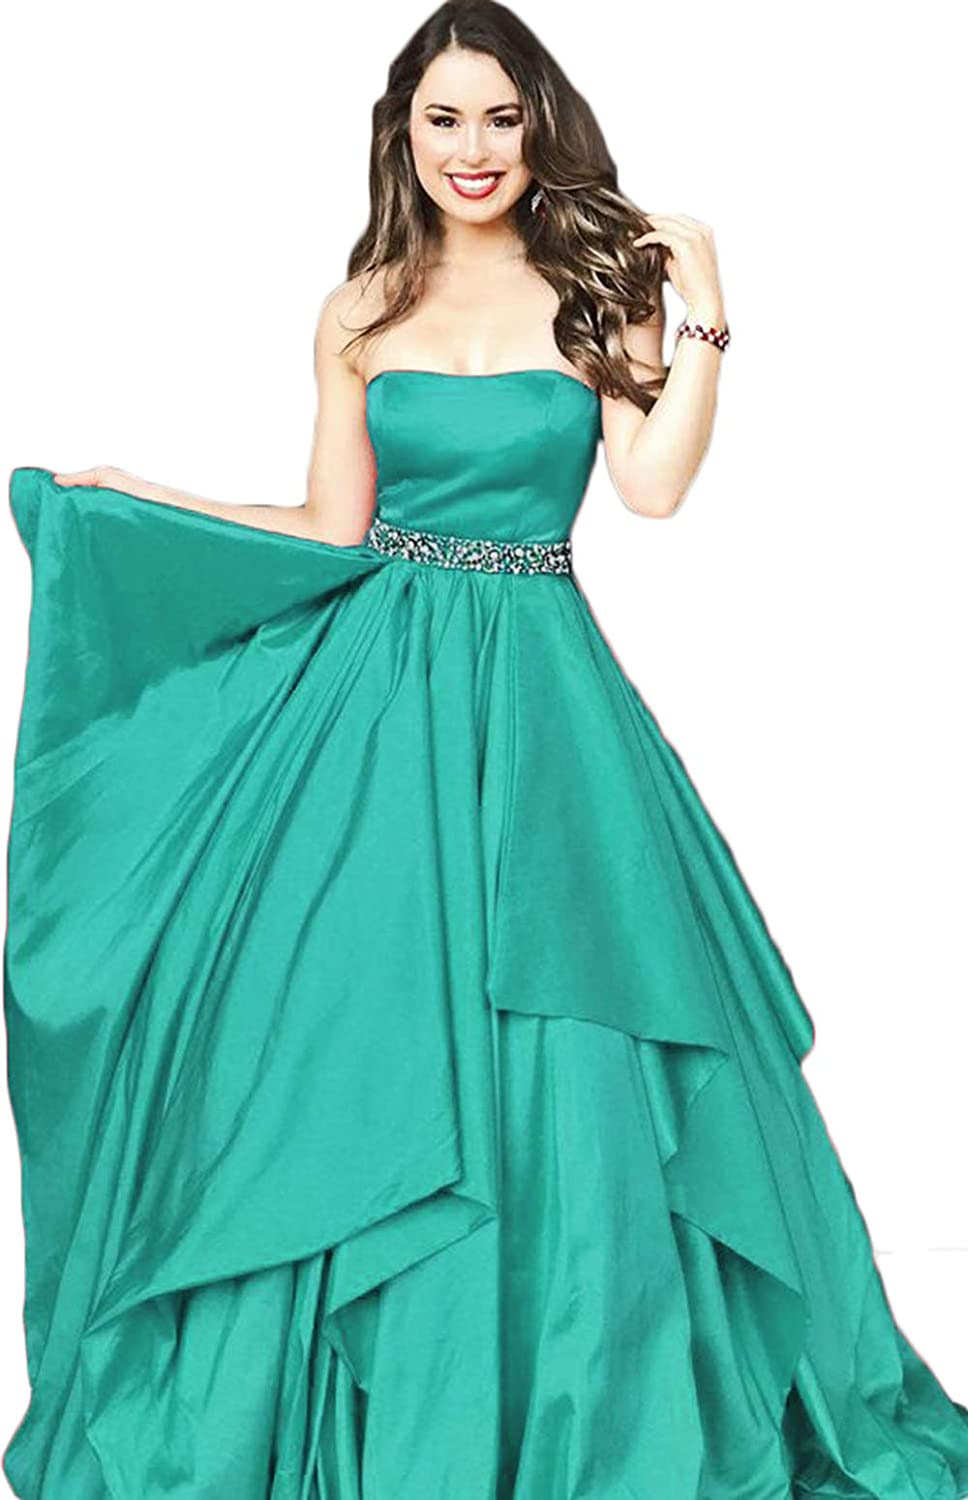 Womens Strapless Prom Dresses Long 2019 Crystal Beaded Formal Evening Party Ball Gown